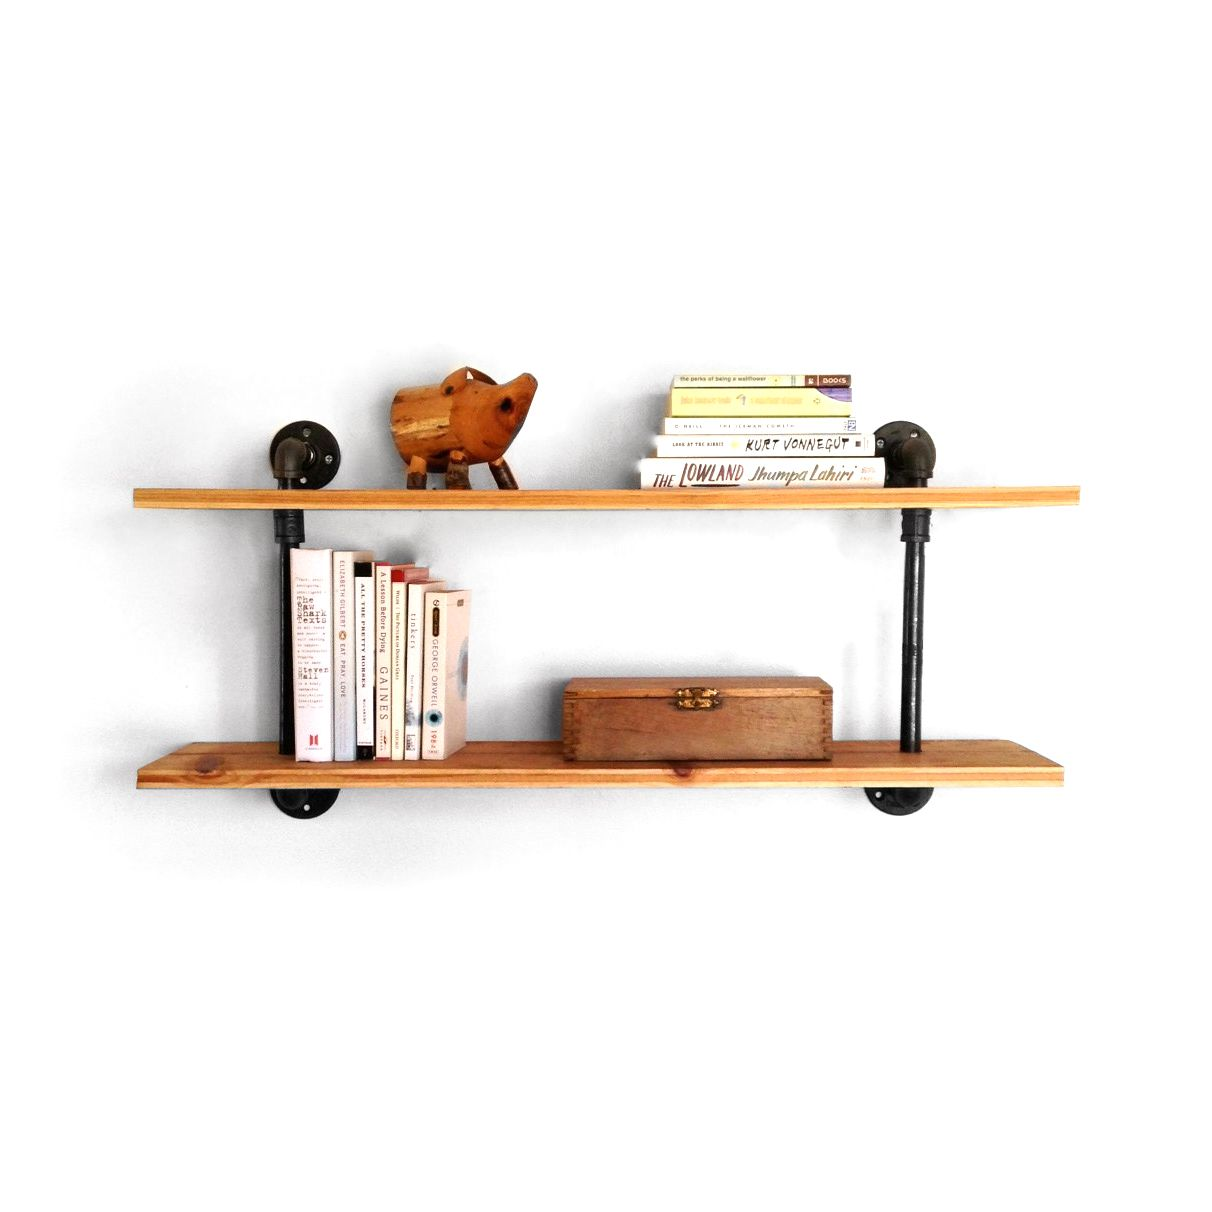 Küchendesign eine wand furniture and décor for the modern lifestyle  home  pinterest